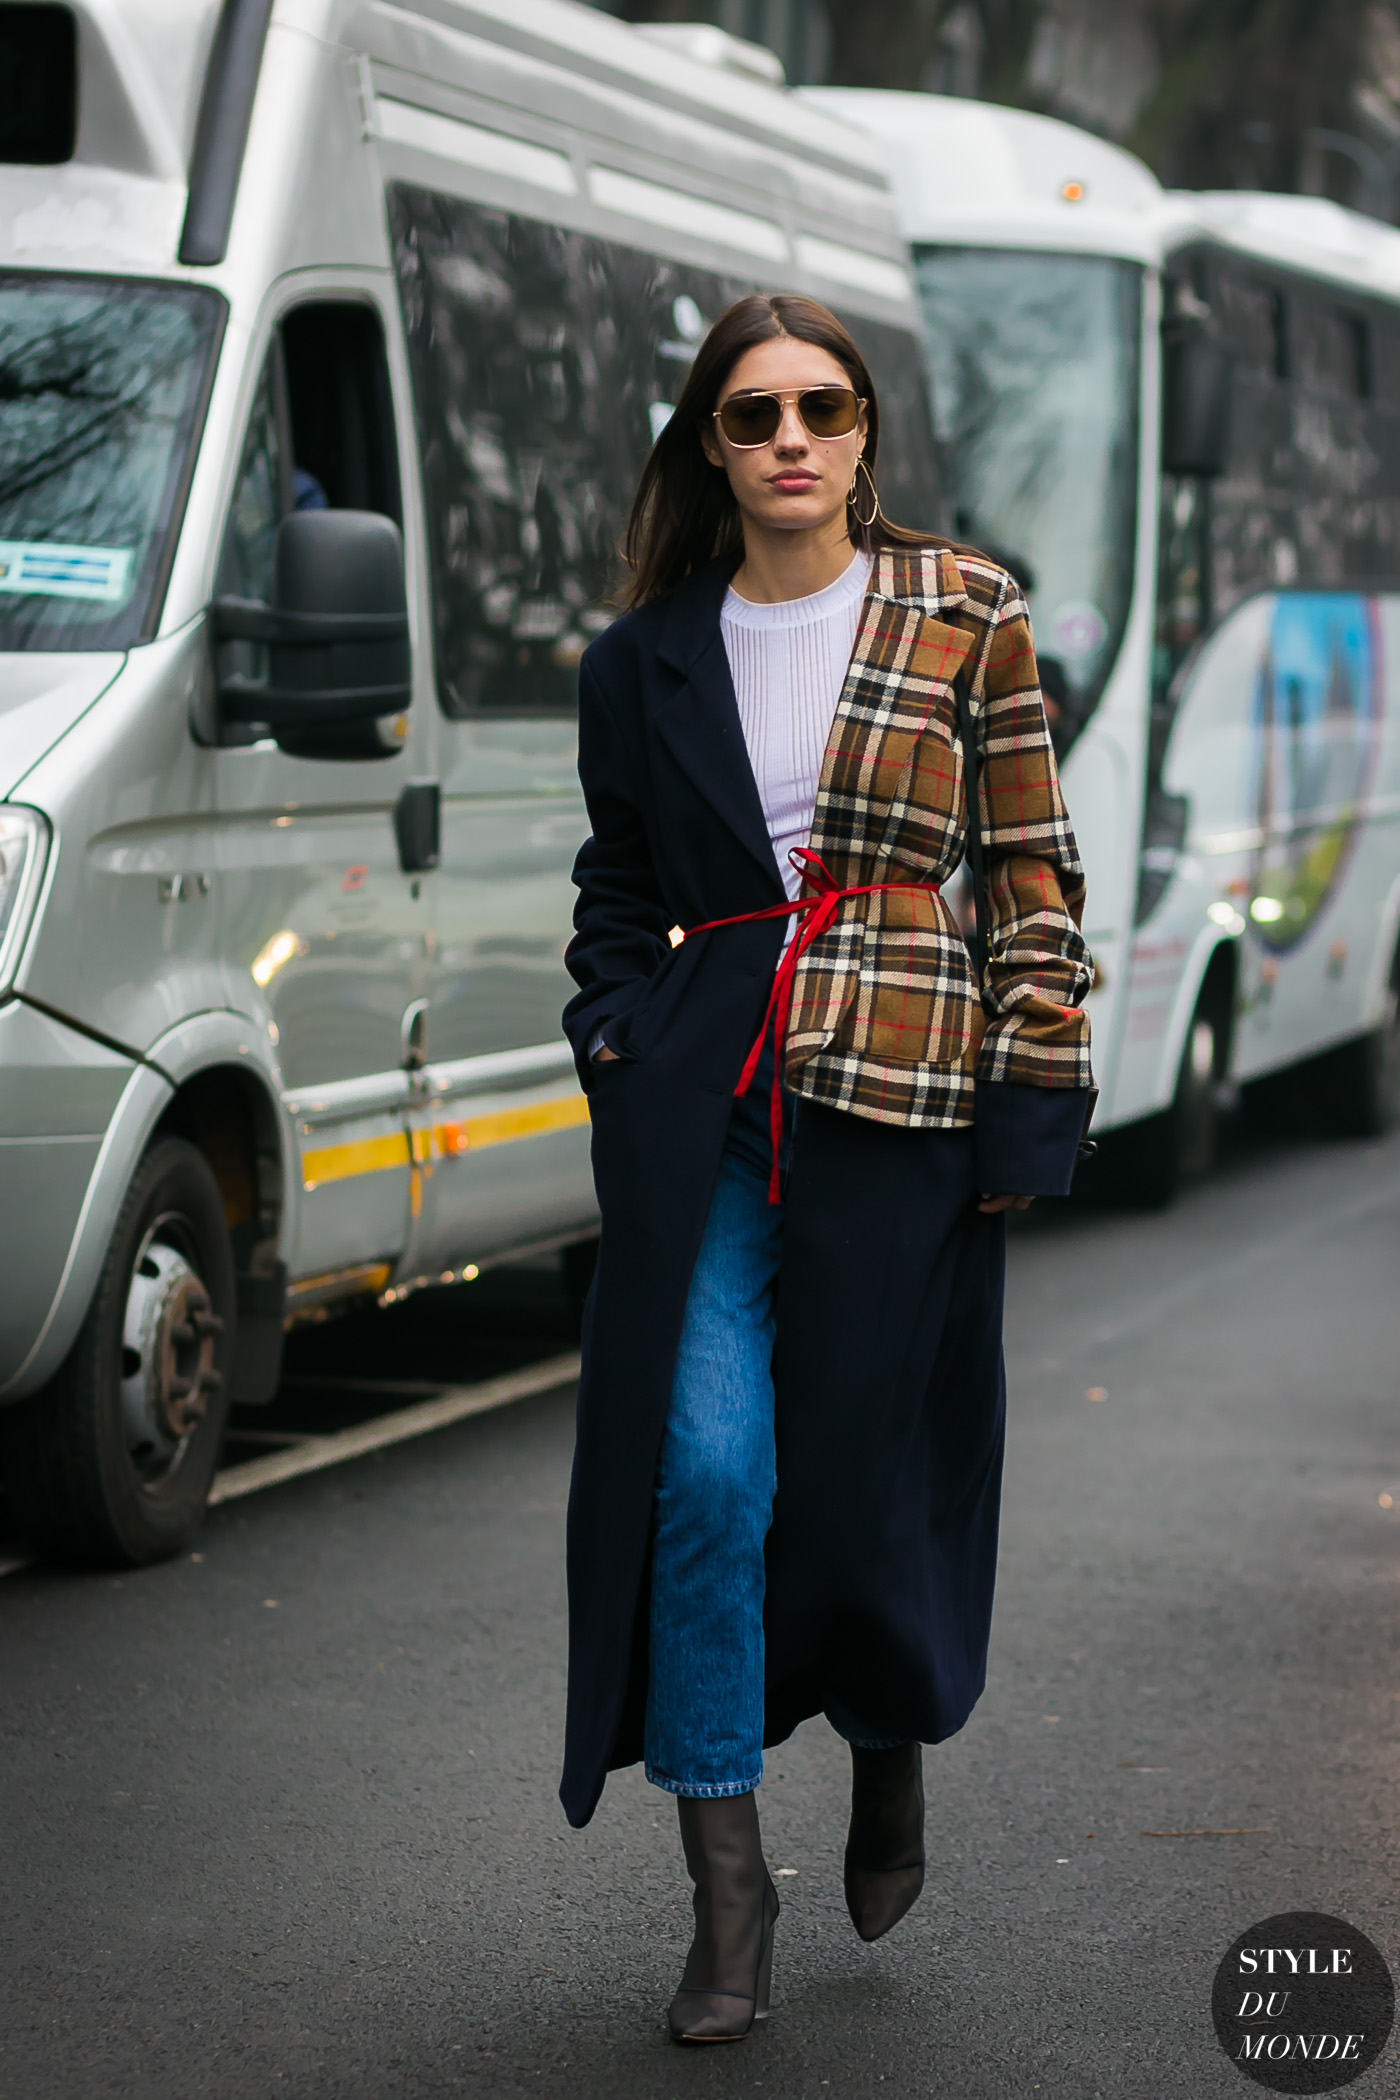 Patricia Manfield by STYLEDUMONDE Street Style Fashion Photography0E2A8123